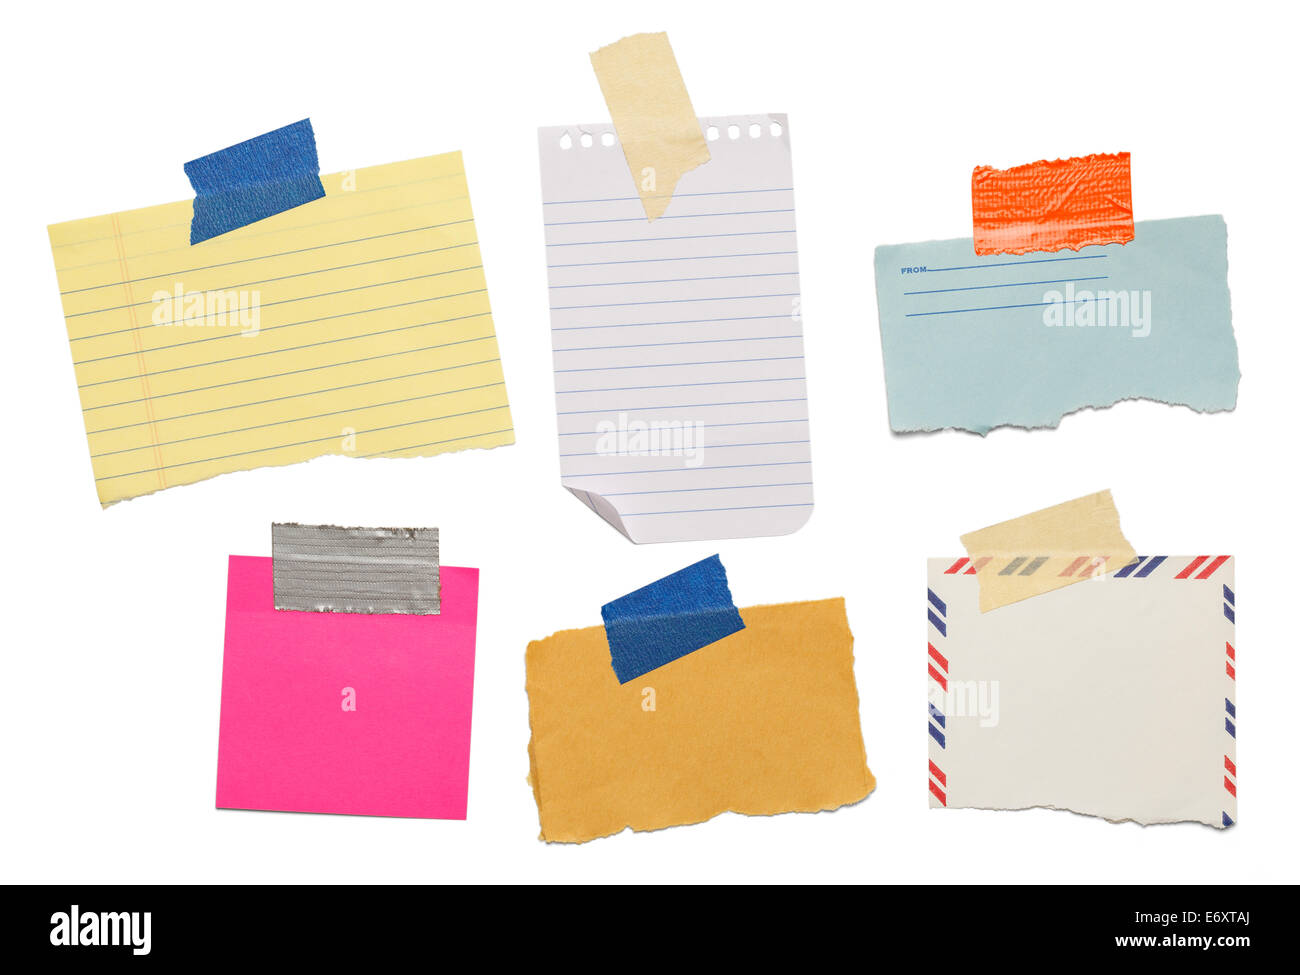 six different scraps of paper notes isolated on white background. - Stock Image